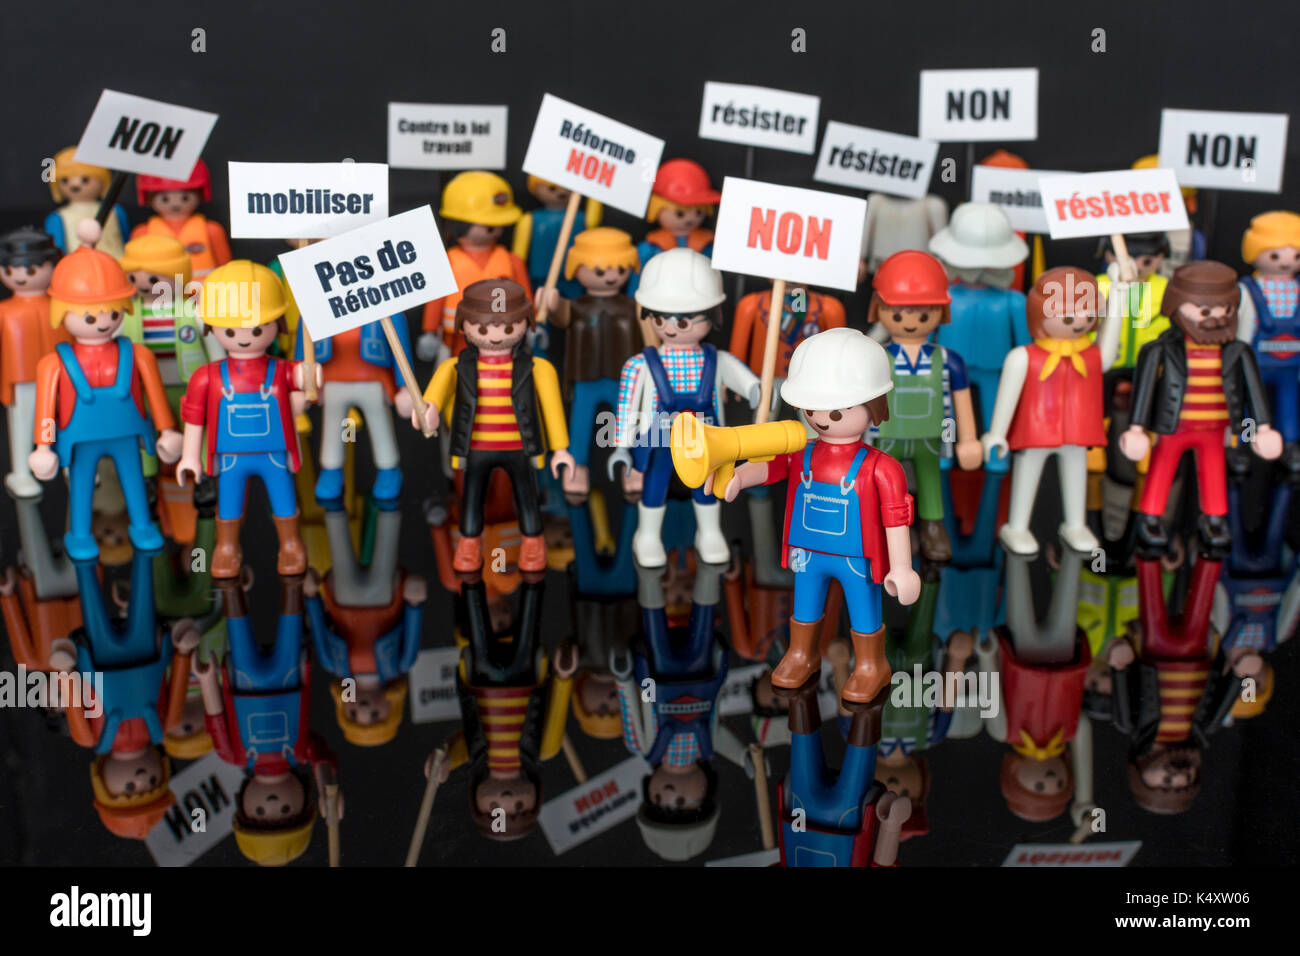 Toy figures lined up in Manif Loi Travail demo - metaphor for Strikes & CGT union's SNCF demonstrations against Emmanuel Macron's labour law reforms - Stock Image